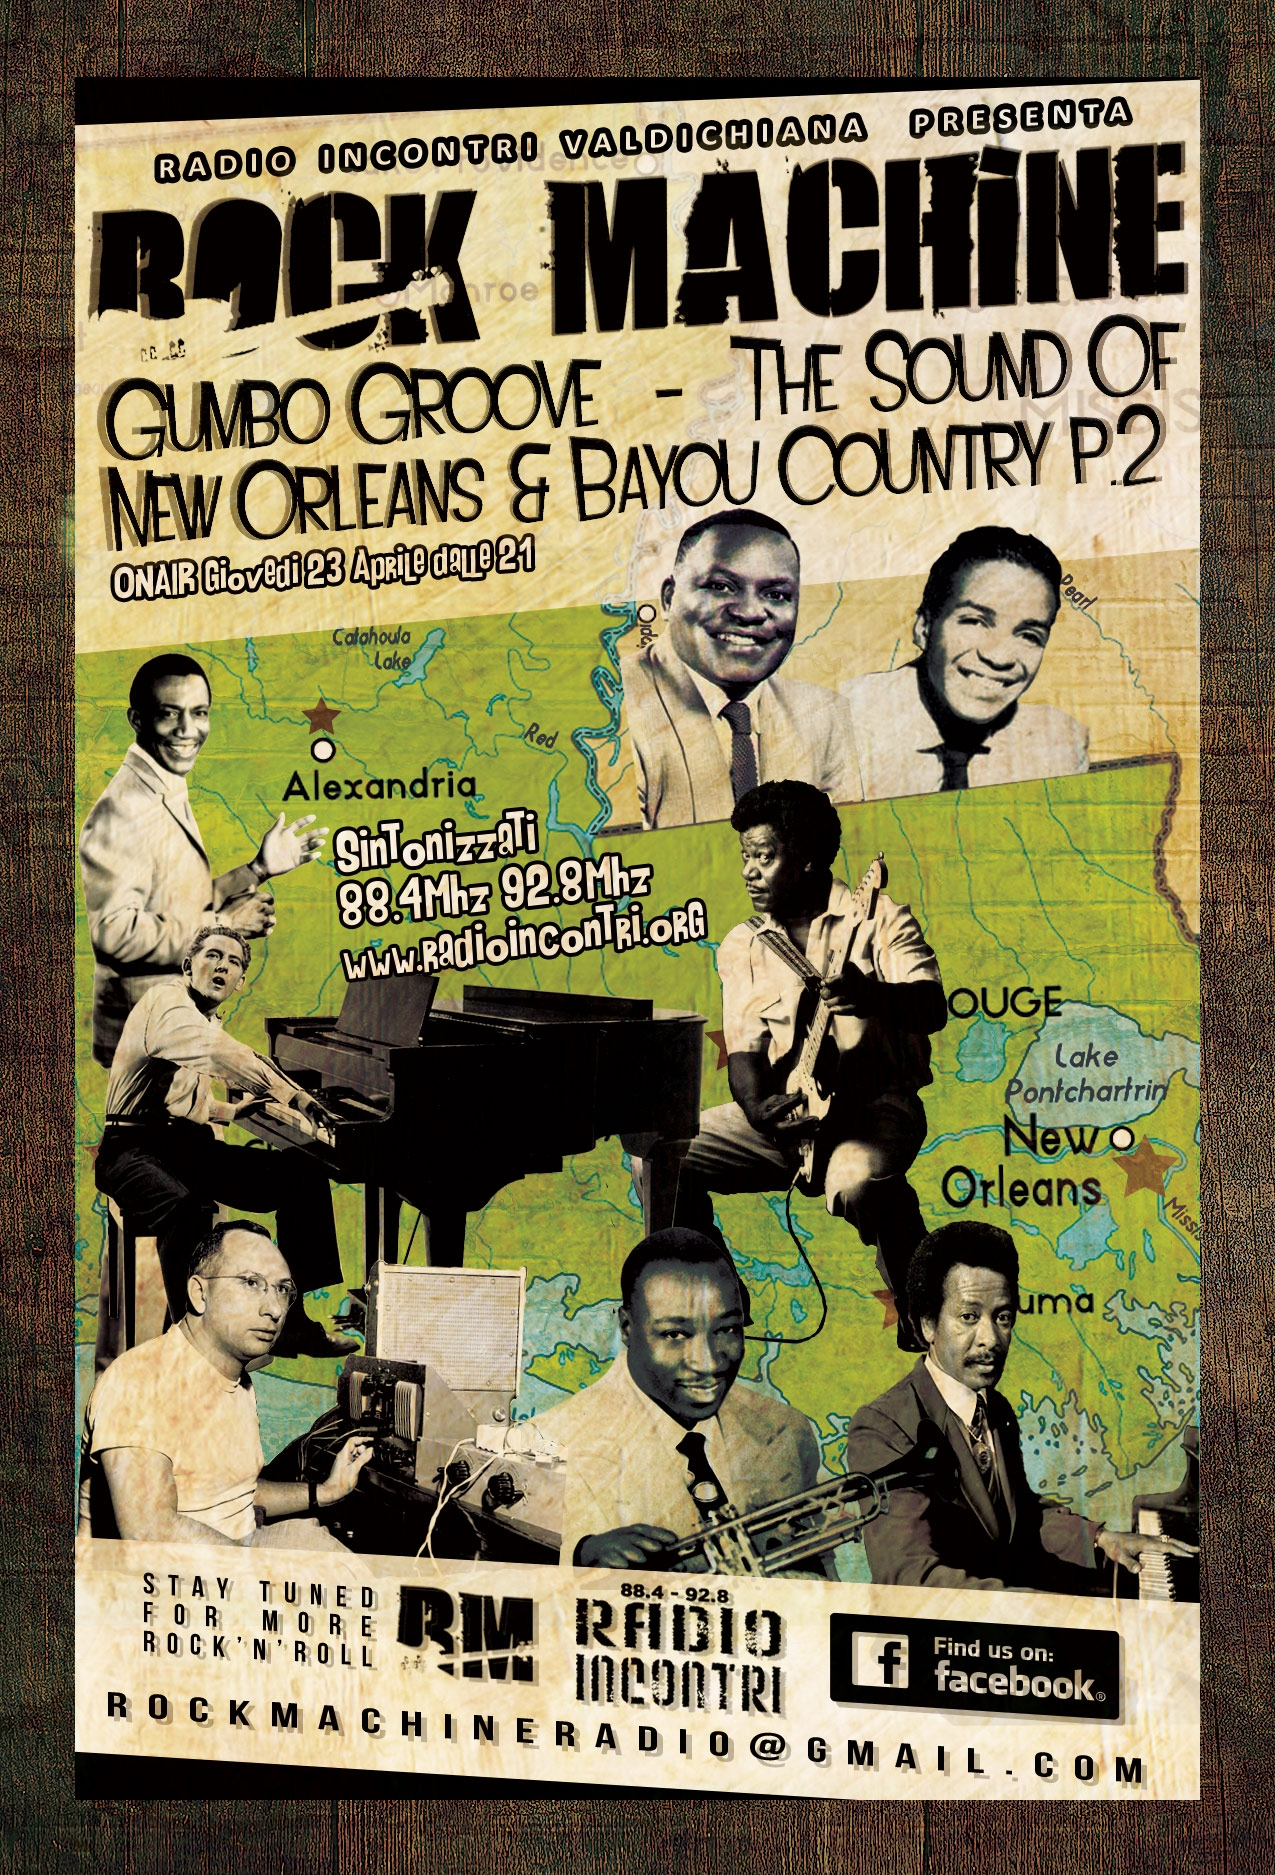 Gumbo Groove - The Sound Of New Orleans & Bayou Country (parte 2)